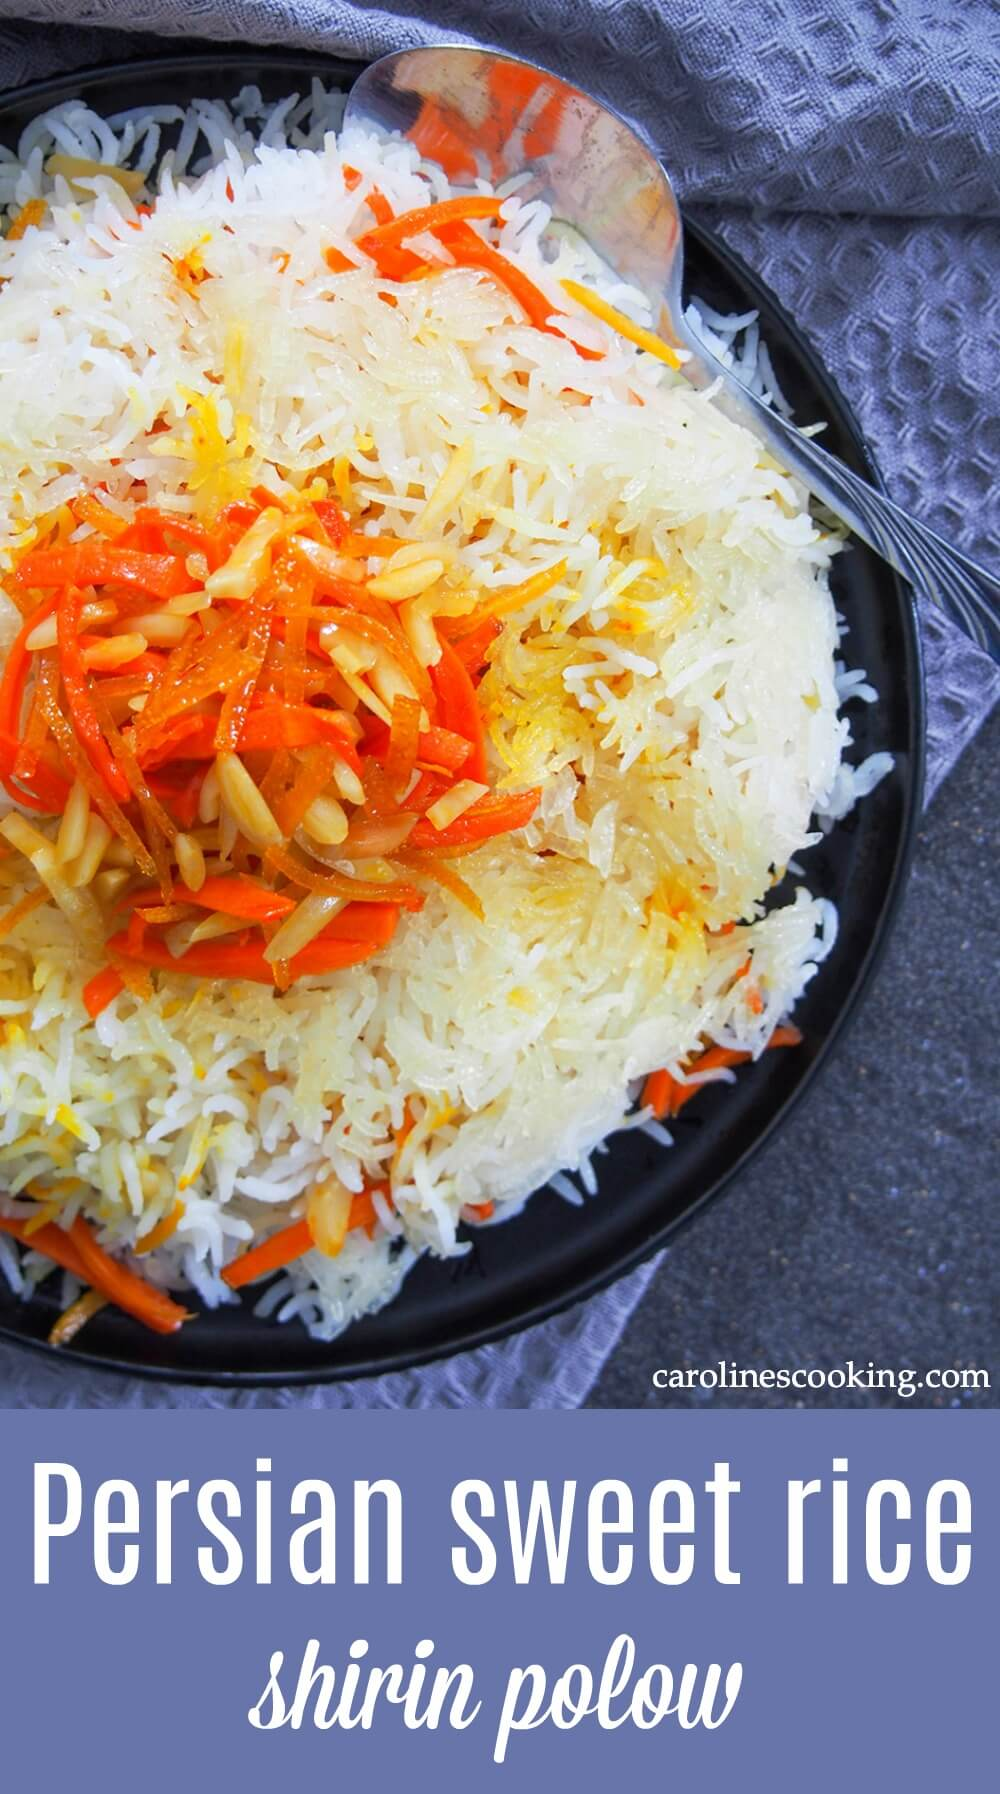 Persian sweet rice, shirin polow, is traditionally served at special occasions and it is indeed a special side. But it's one that you should definitely make an excuse to enjoy more often, it's so bright and delicious! #persianfood #rice #sweetrice #orangerice #sidedish